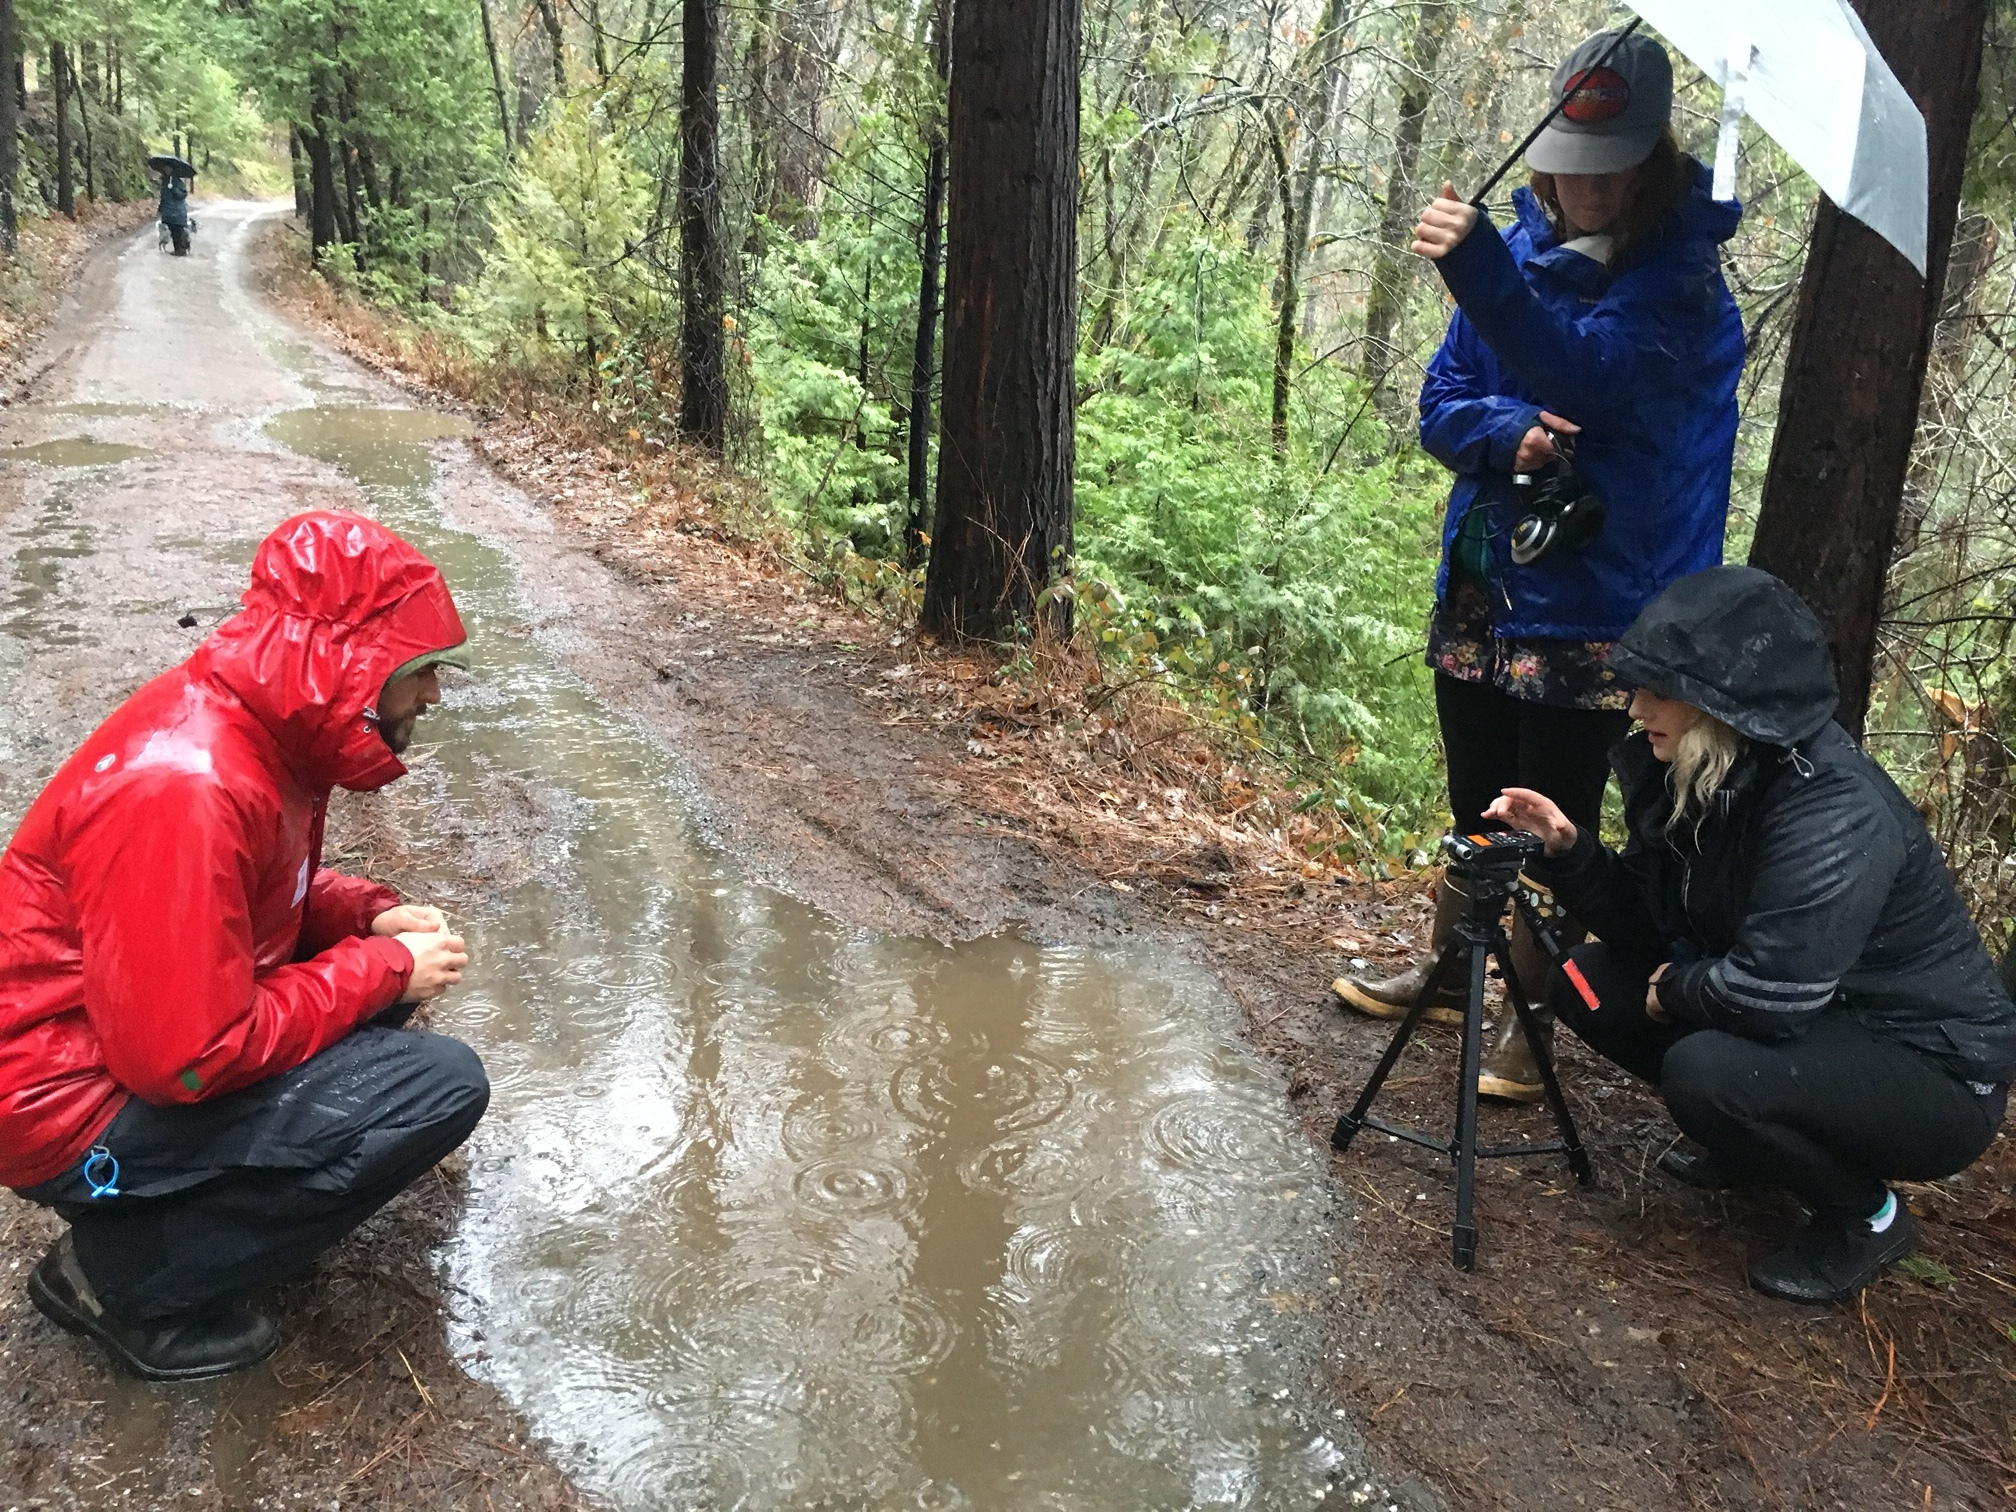 Recording the sound of raindrops on puddles